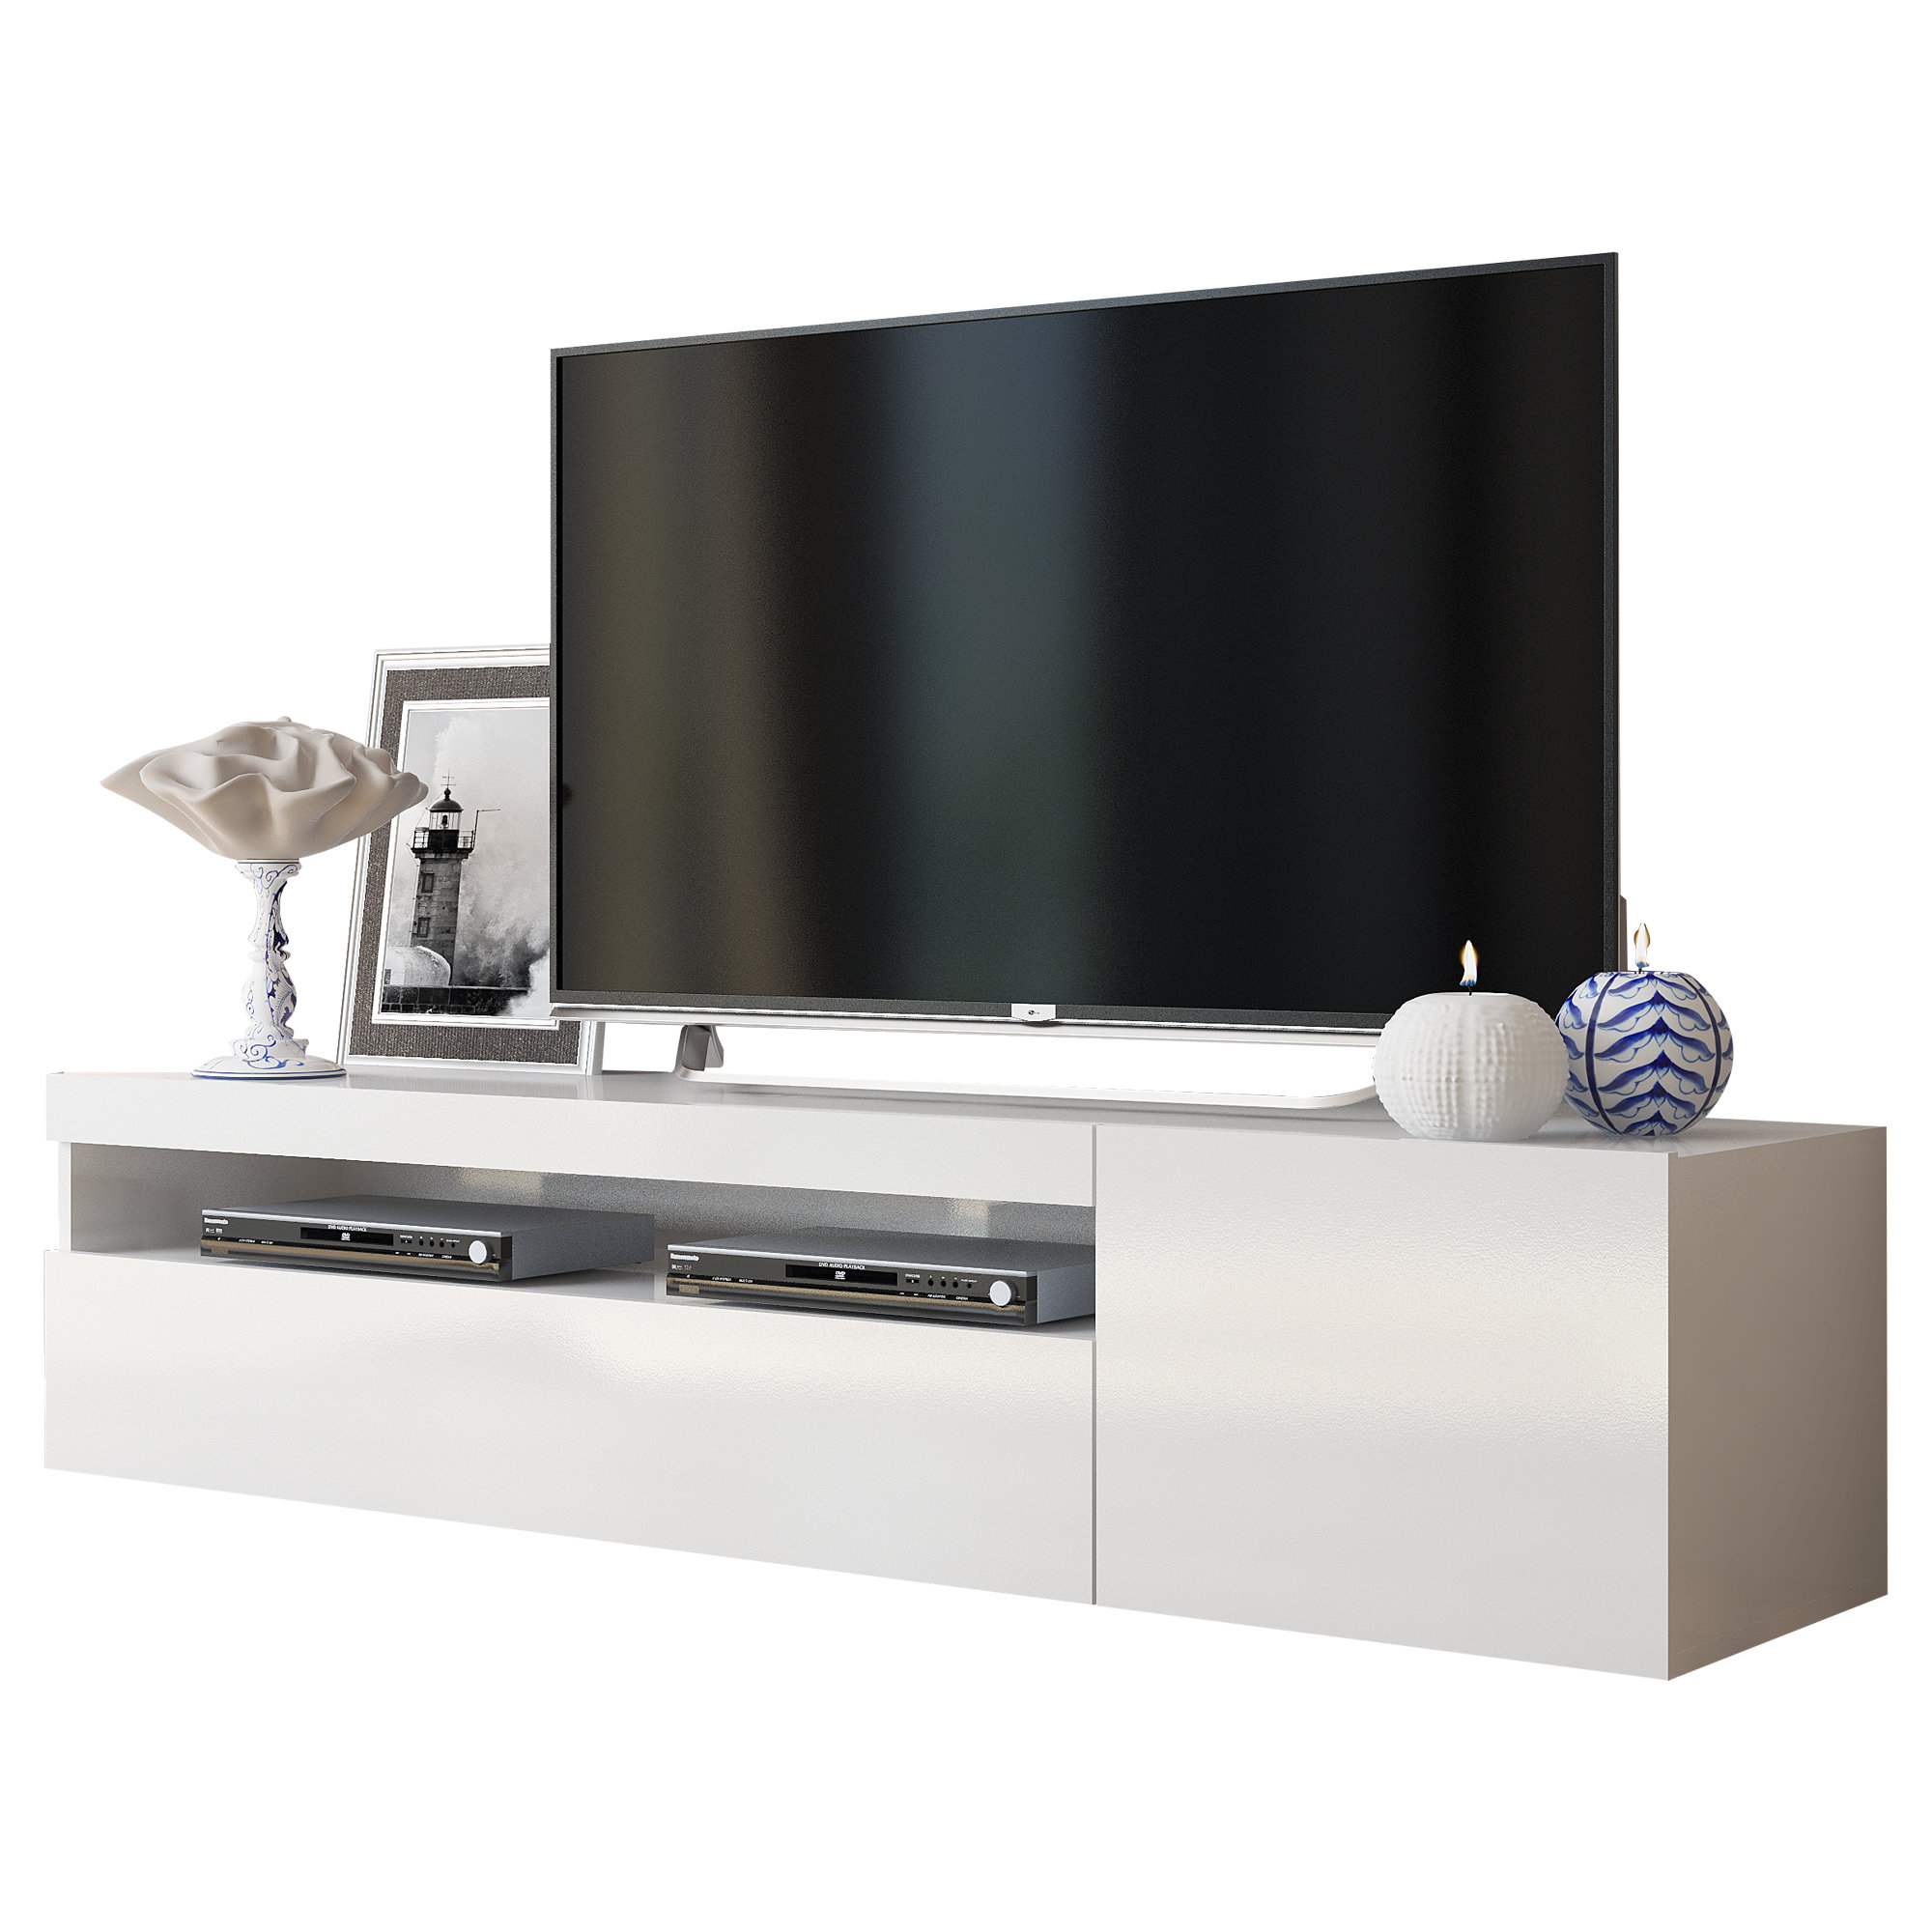 Allmodern Throughout All Modern Tv Stands (Gallery 29 of 36)